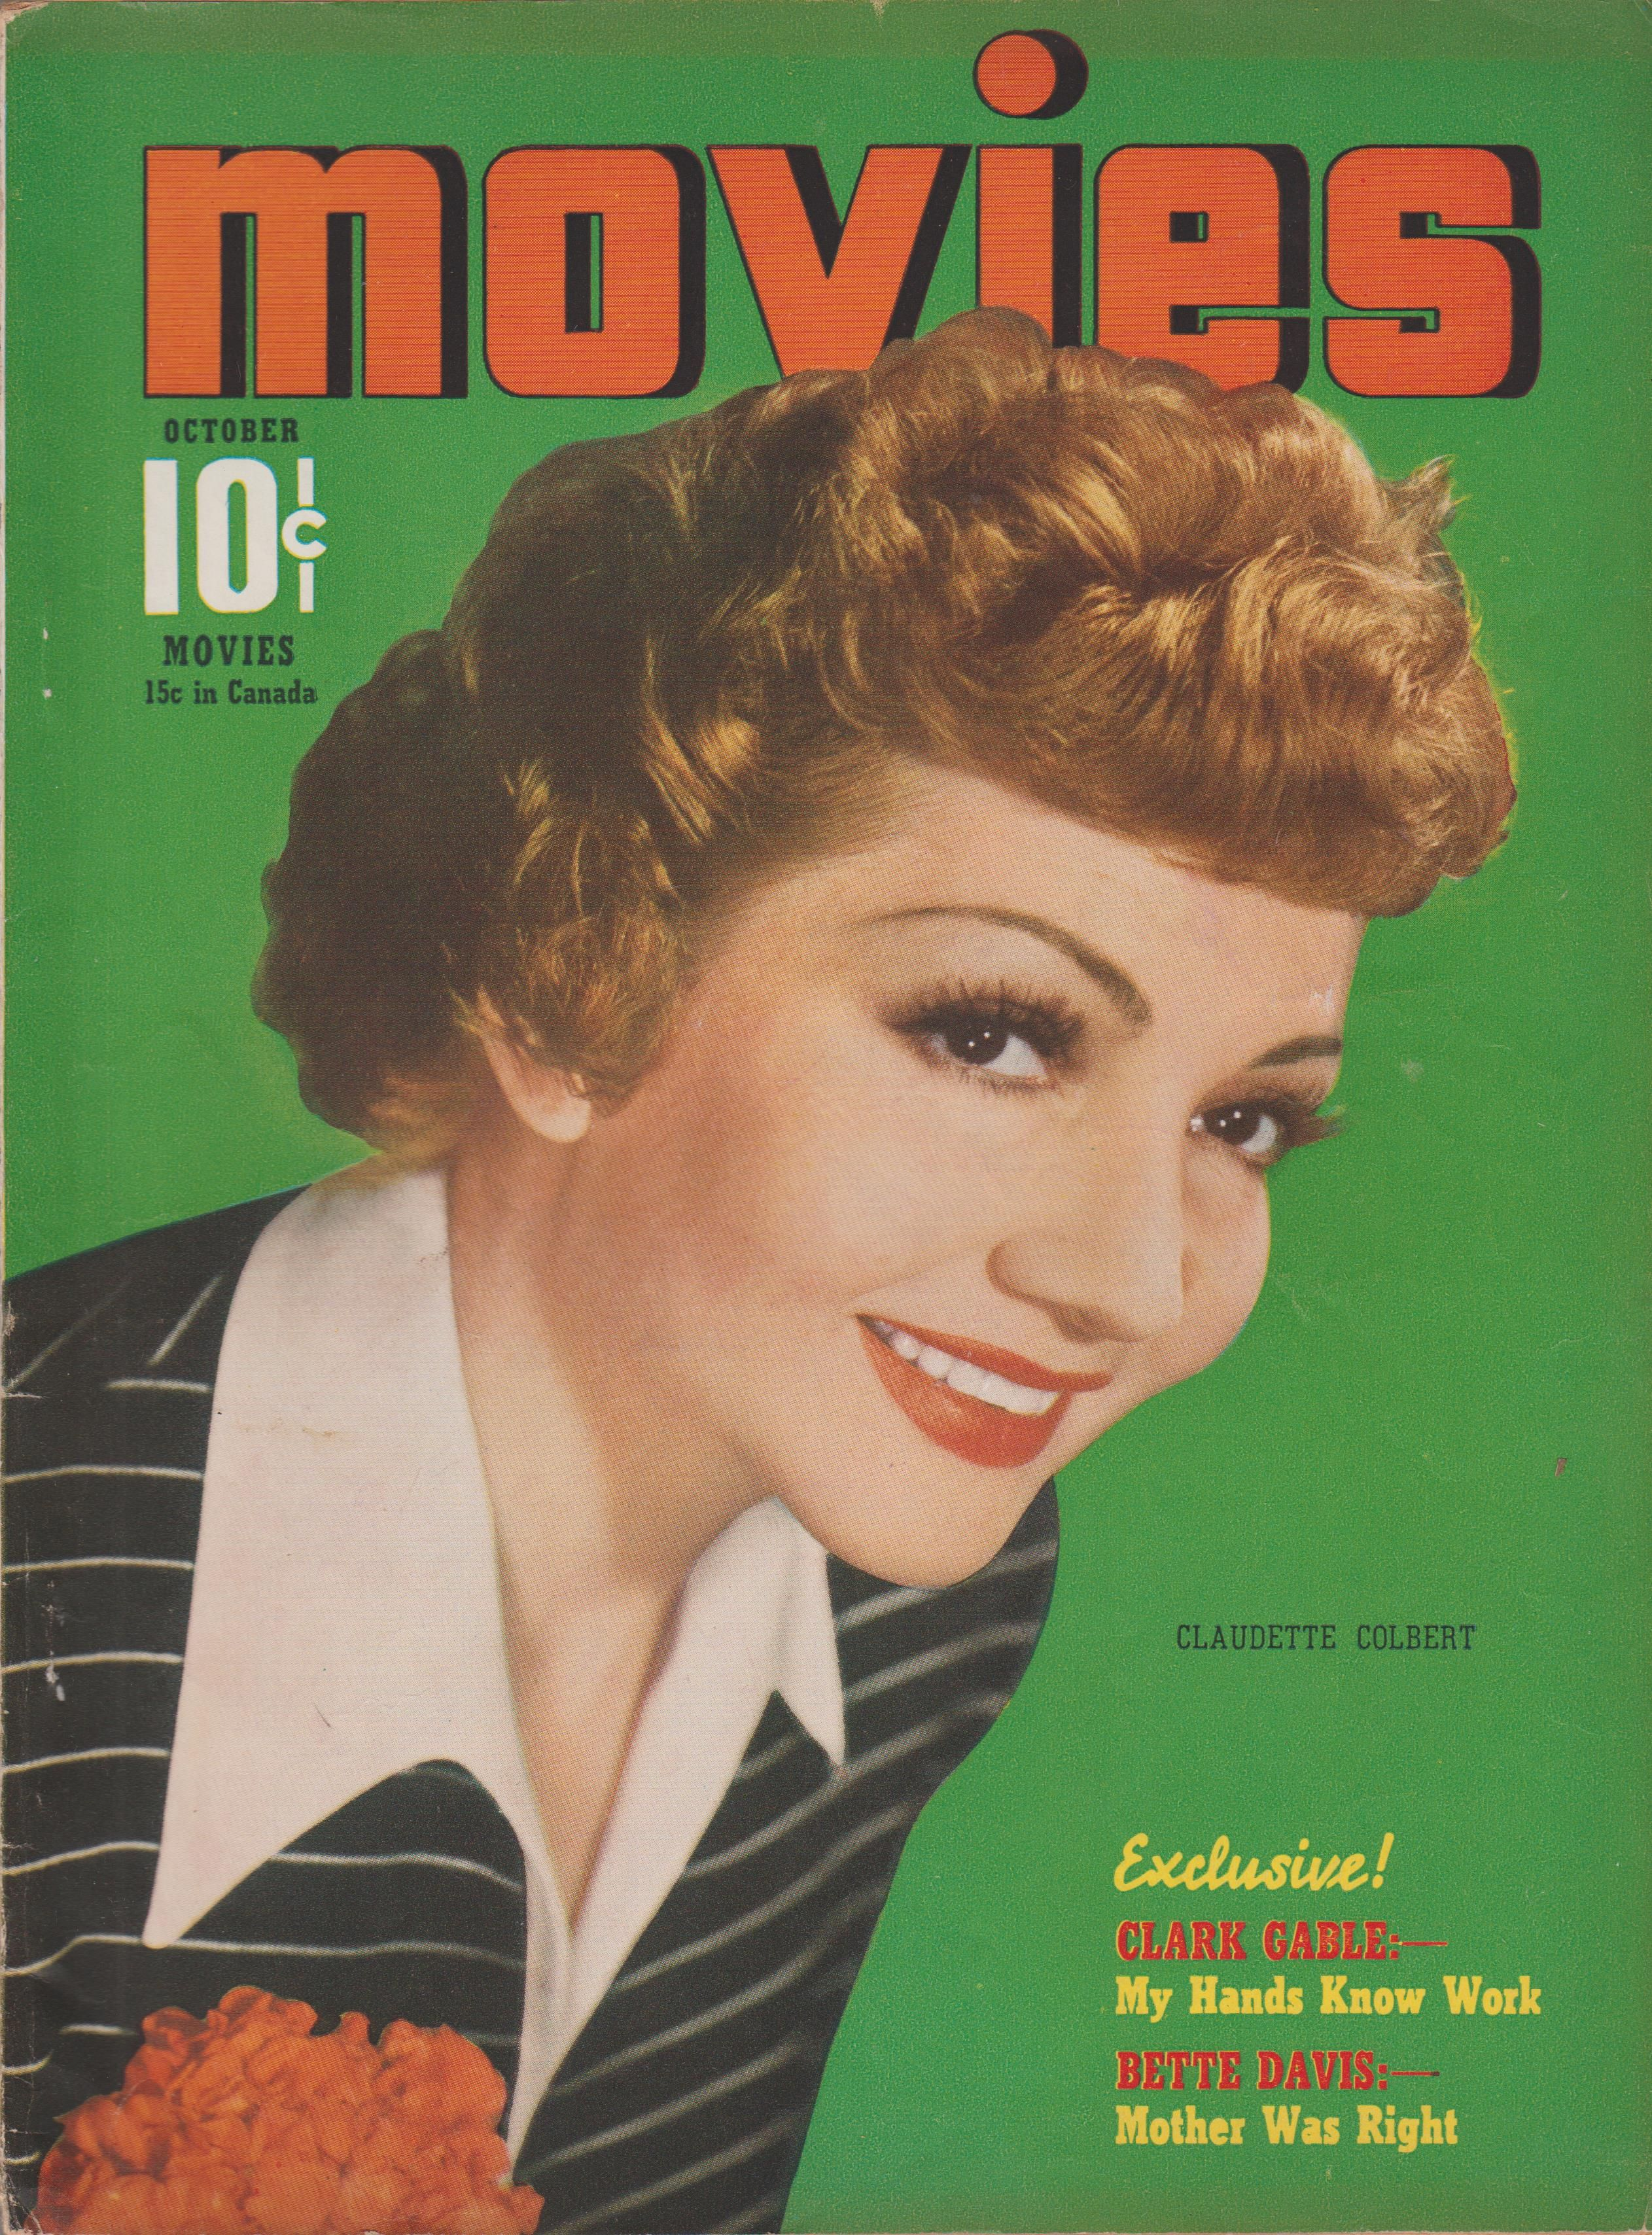 Claudette Colbert on the October 1940 Movies